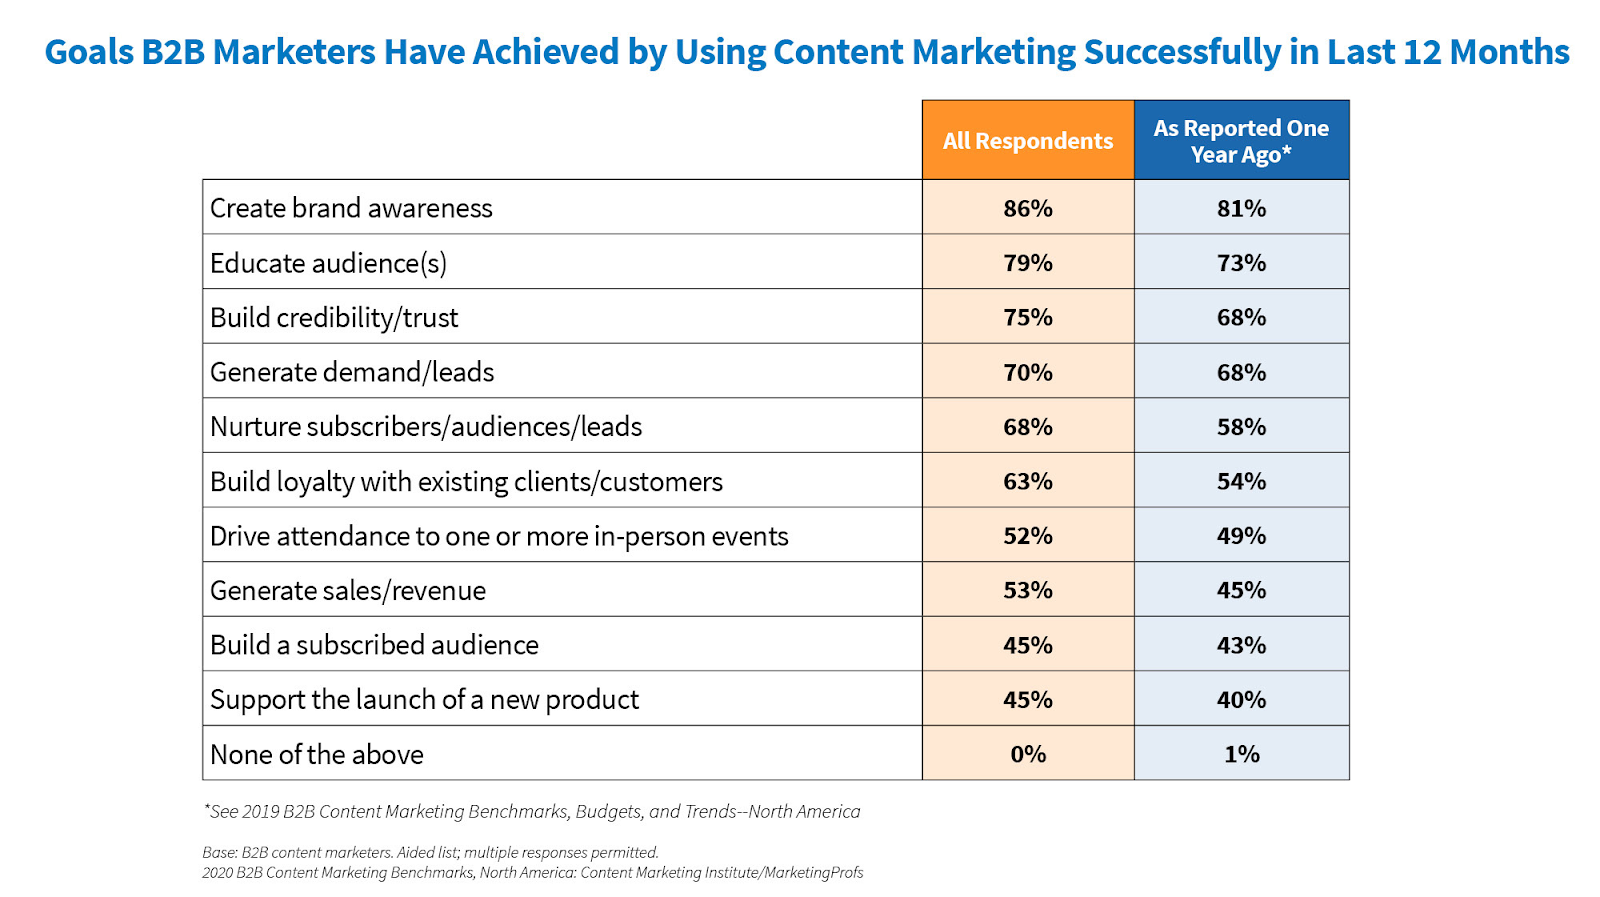 Goals B2B marketers have achieved by using content marketing successfully in the past year